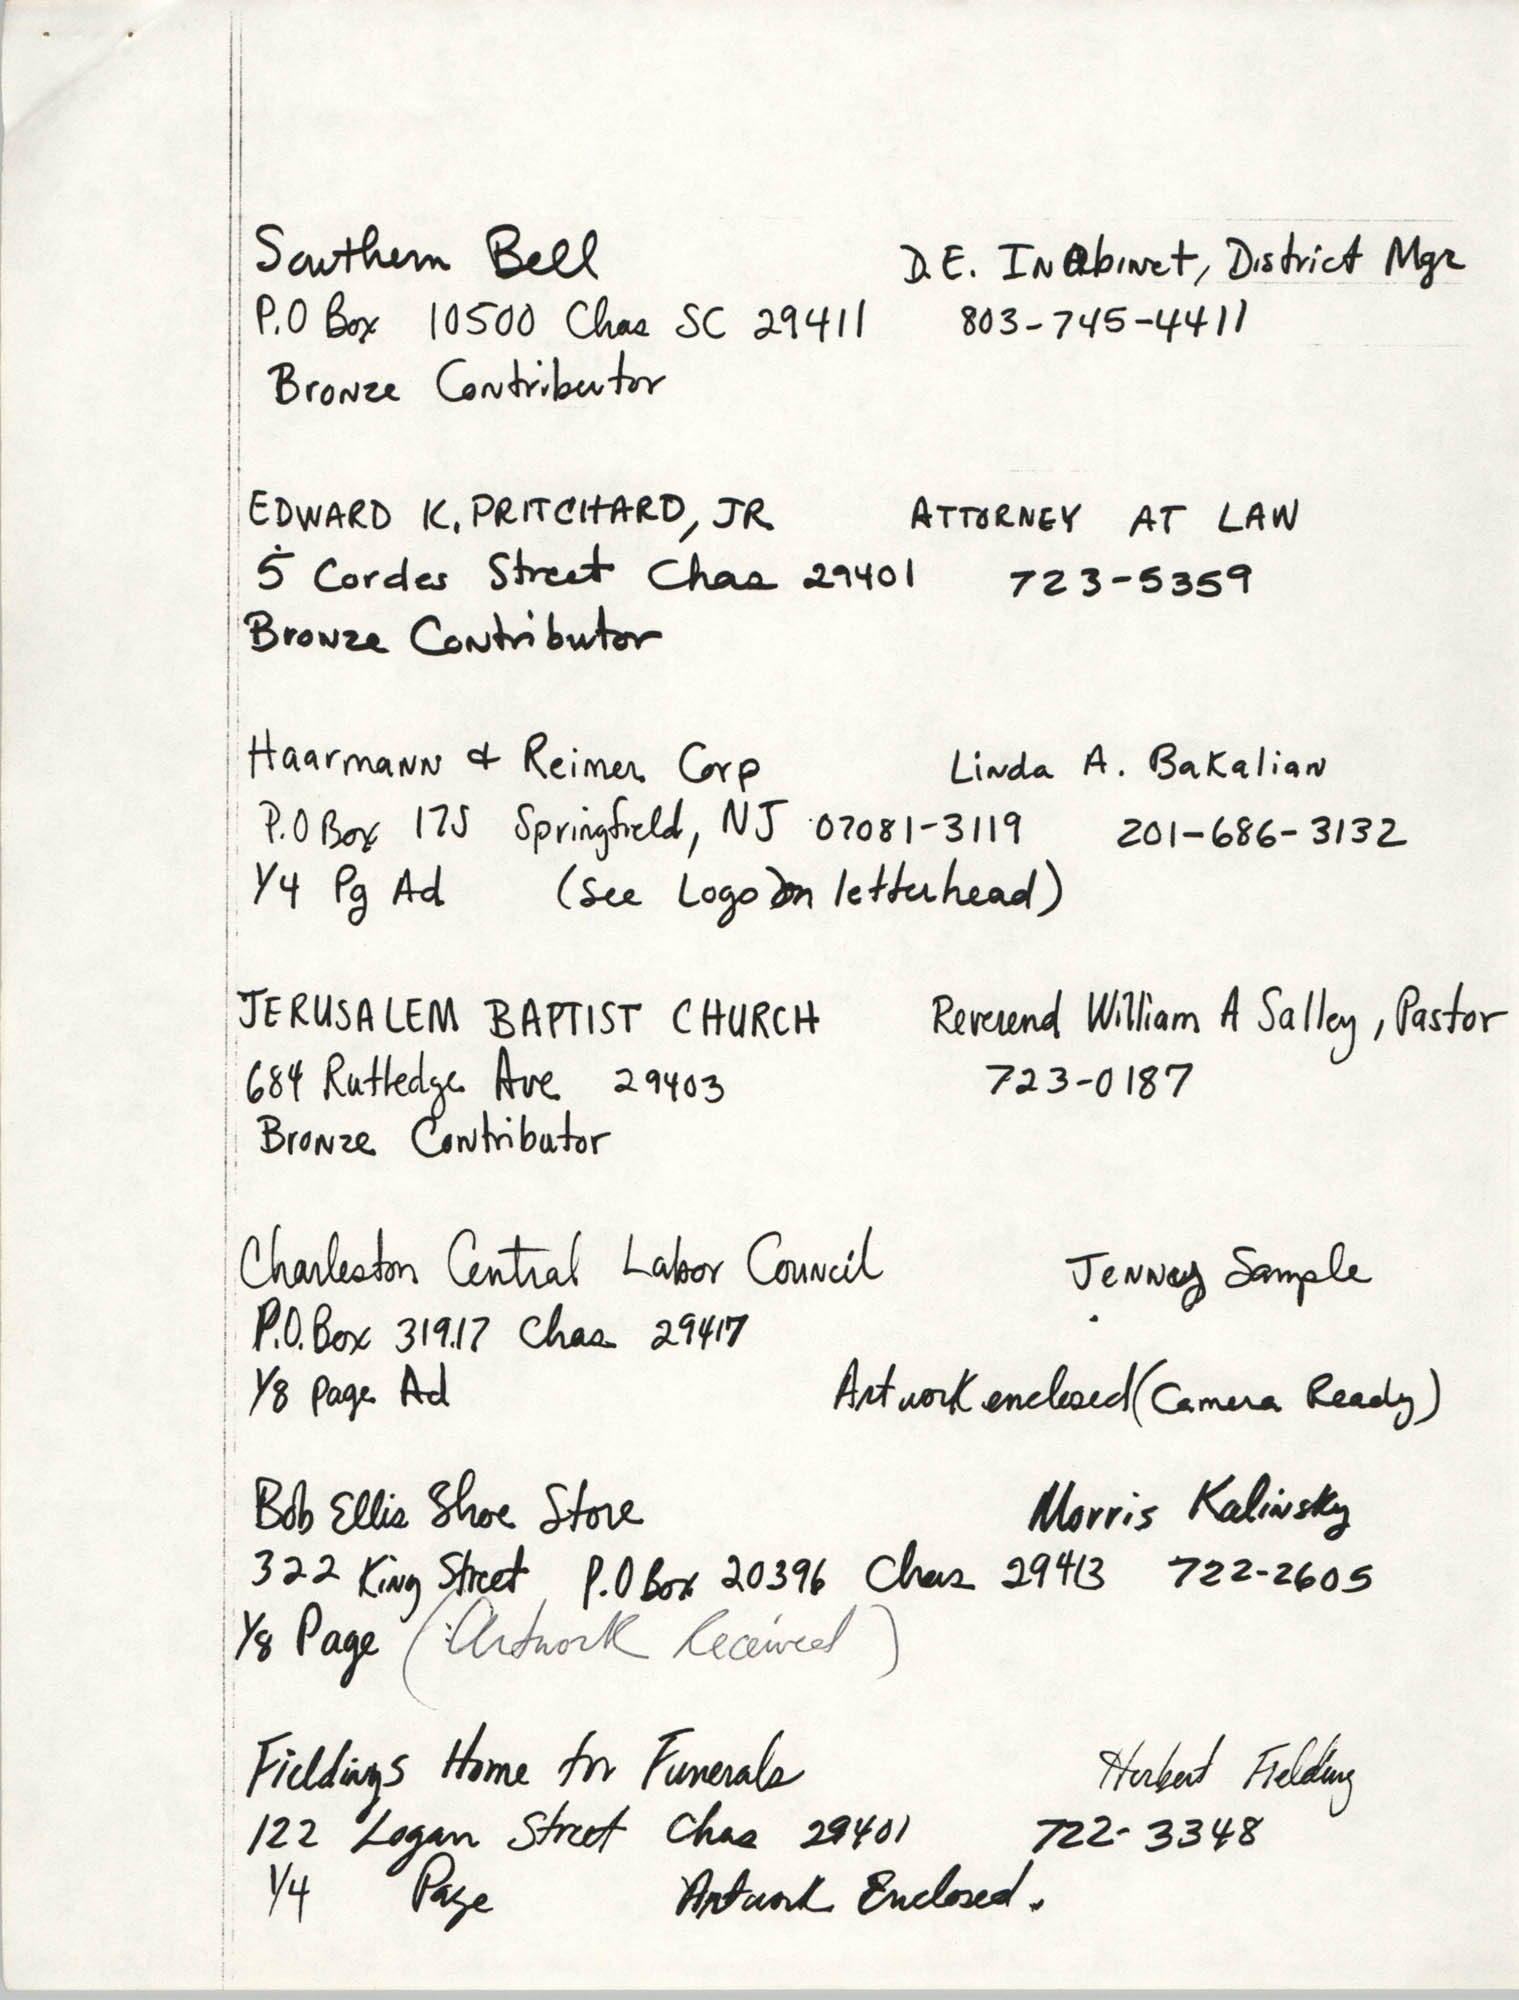 Handwritten list of individuals and companies